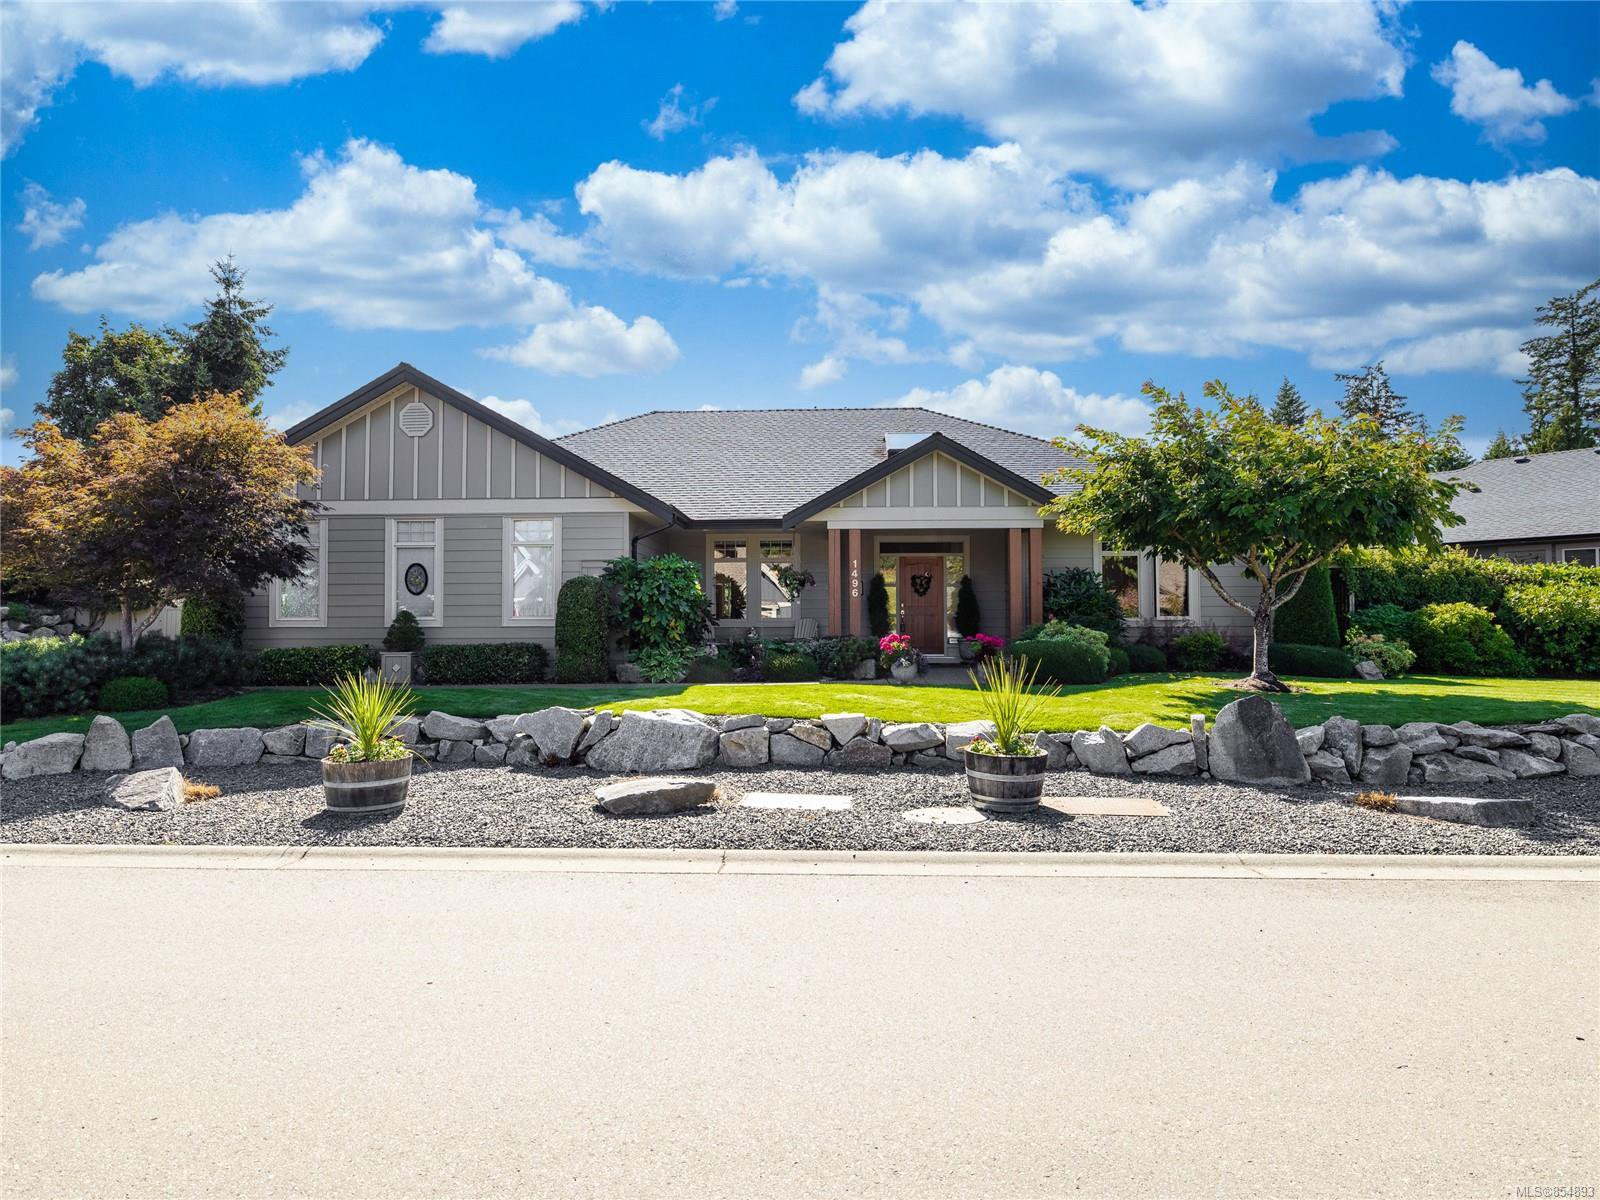 Main Photo: 1496 Sumar Lane in : PQ French Creek House for sale (Parksville/Qualicum)  : MLS®# 854893